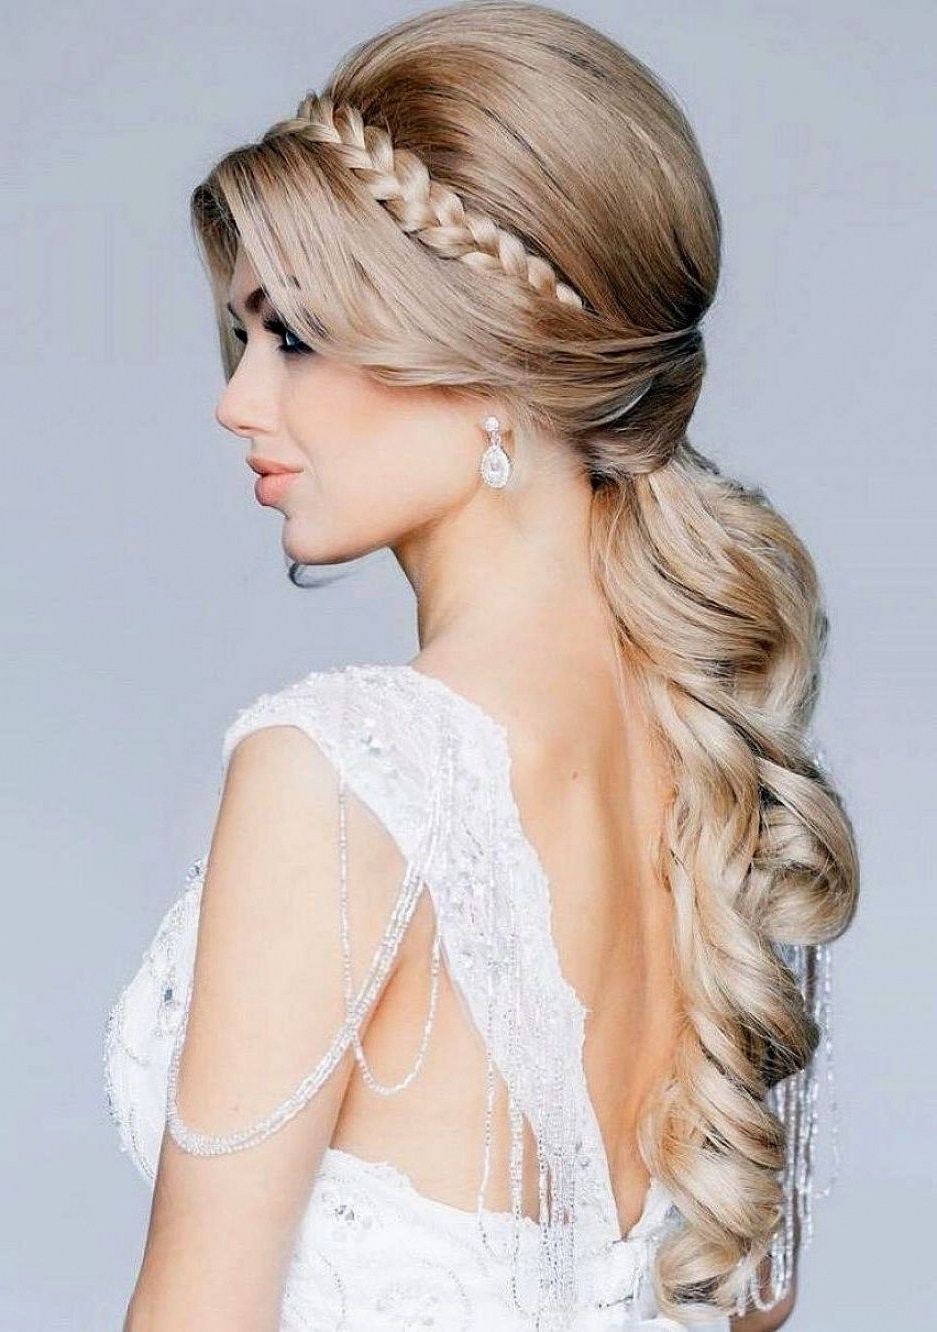 Wedding Hairstyles Long Hair Down Wedding Party Decoration Pertaining To Most Current Hairstyles For Long Hair For A Wedding Party (View 15 of 15)